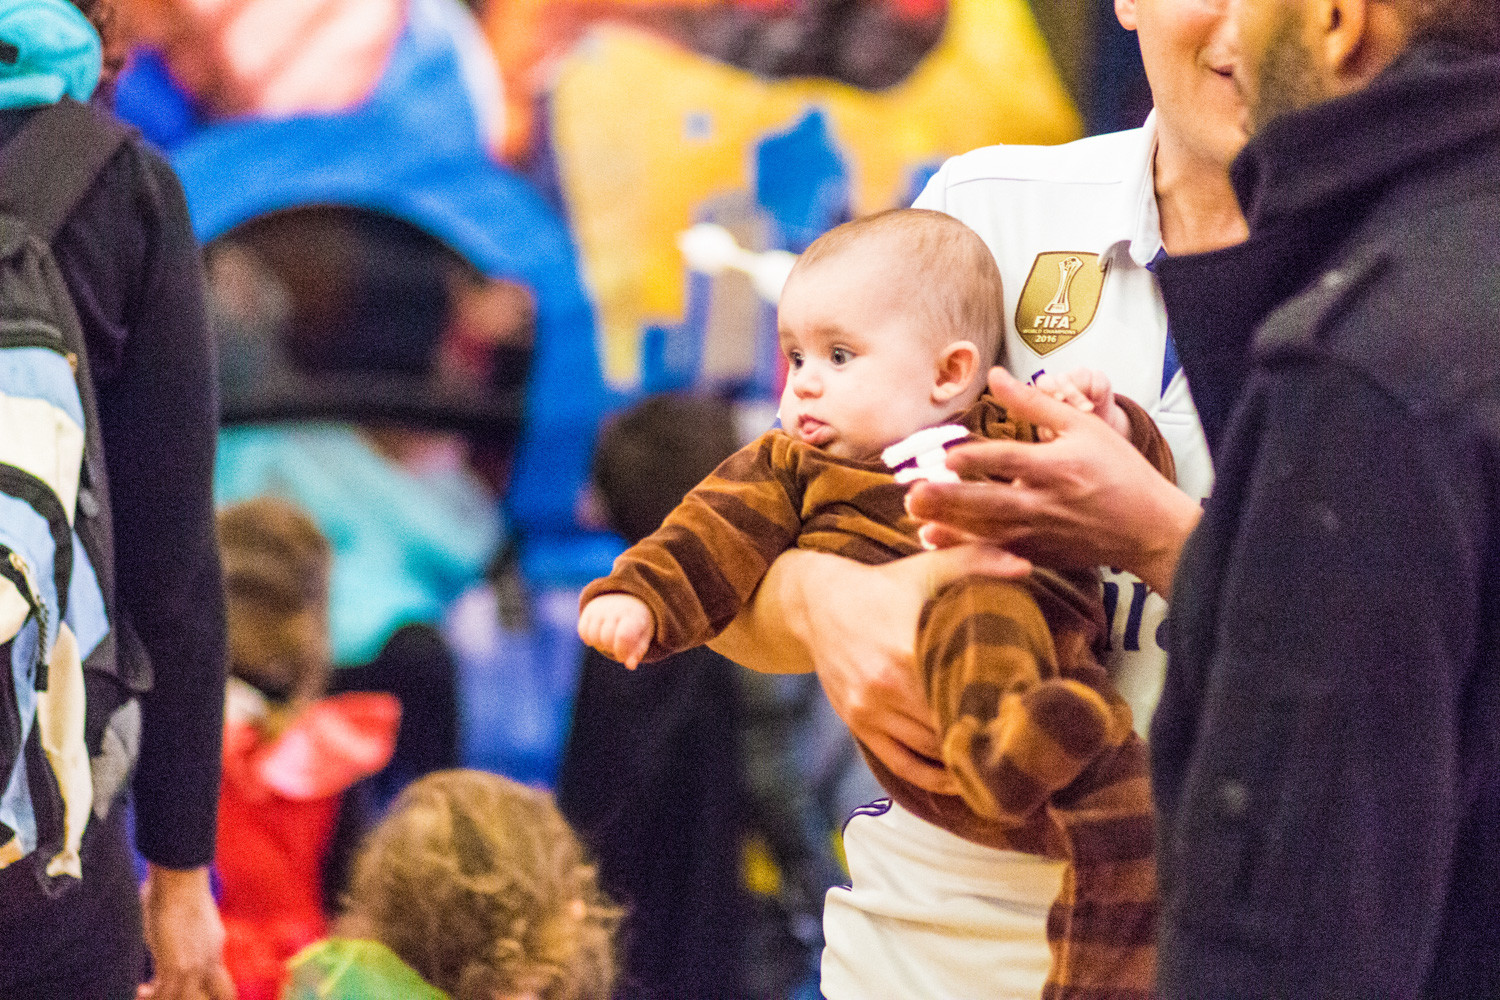 Costumes abounded at the Riverdale Temple's Purim carnival — including a baby dressed as a football.